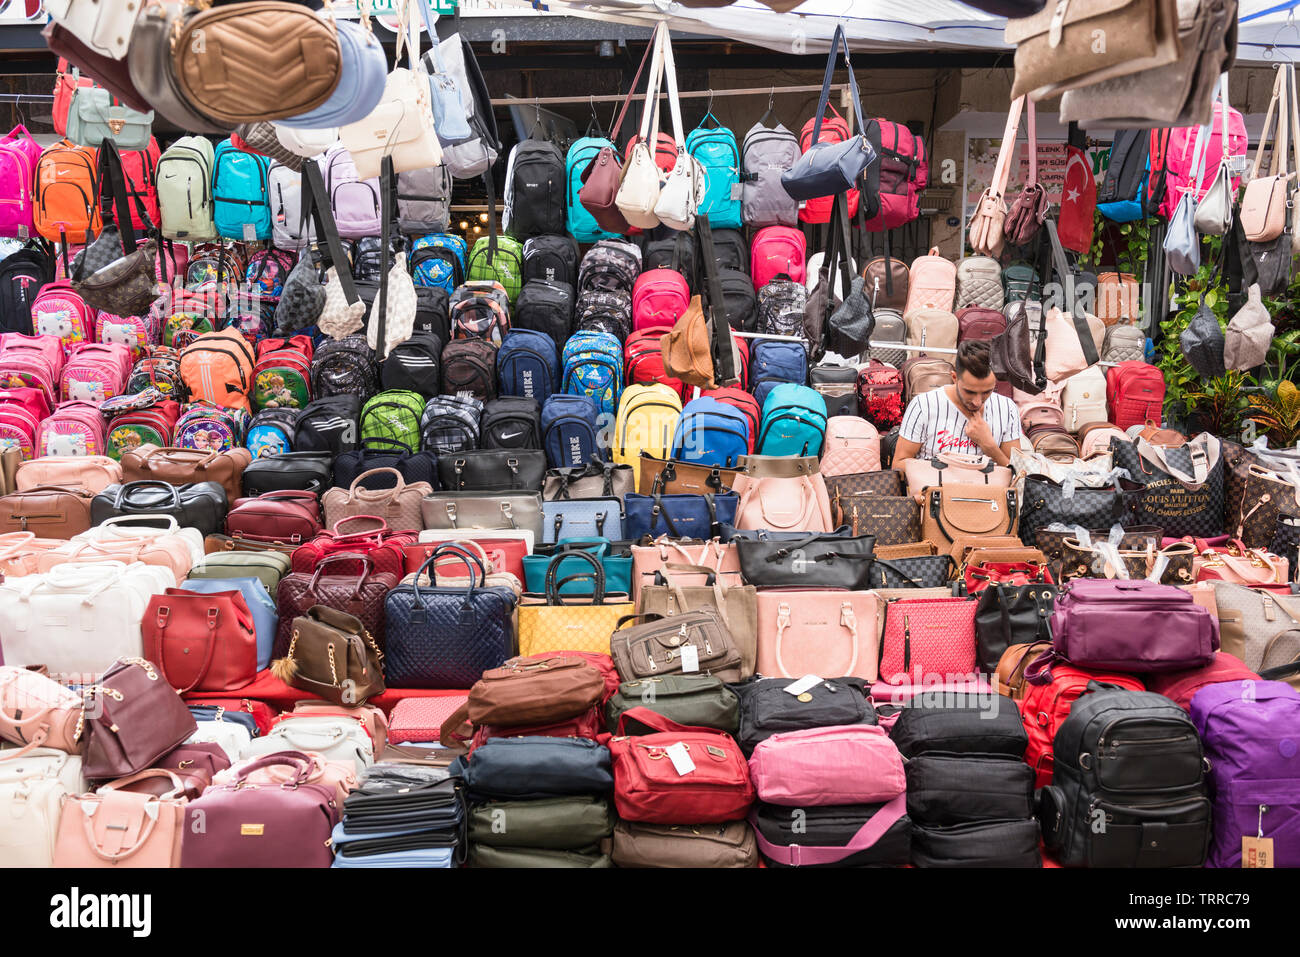 Stallholder surrounded by bags and luggage, apparently made by well known brands, at the Saturday market, aka Berivan Market, Selcuk, Turkey. - Stock Image